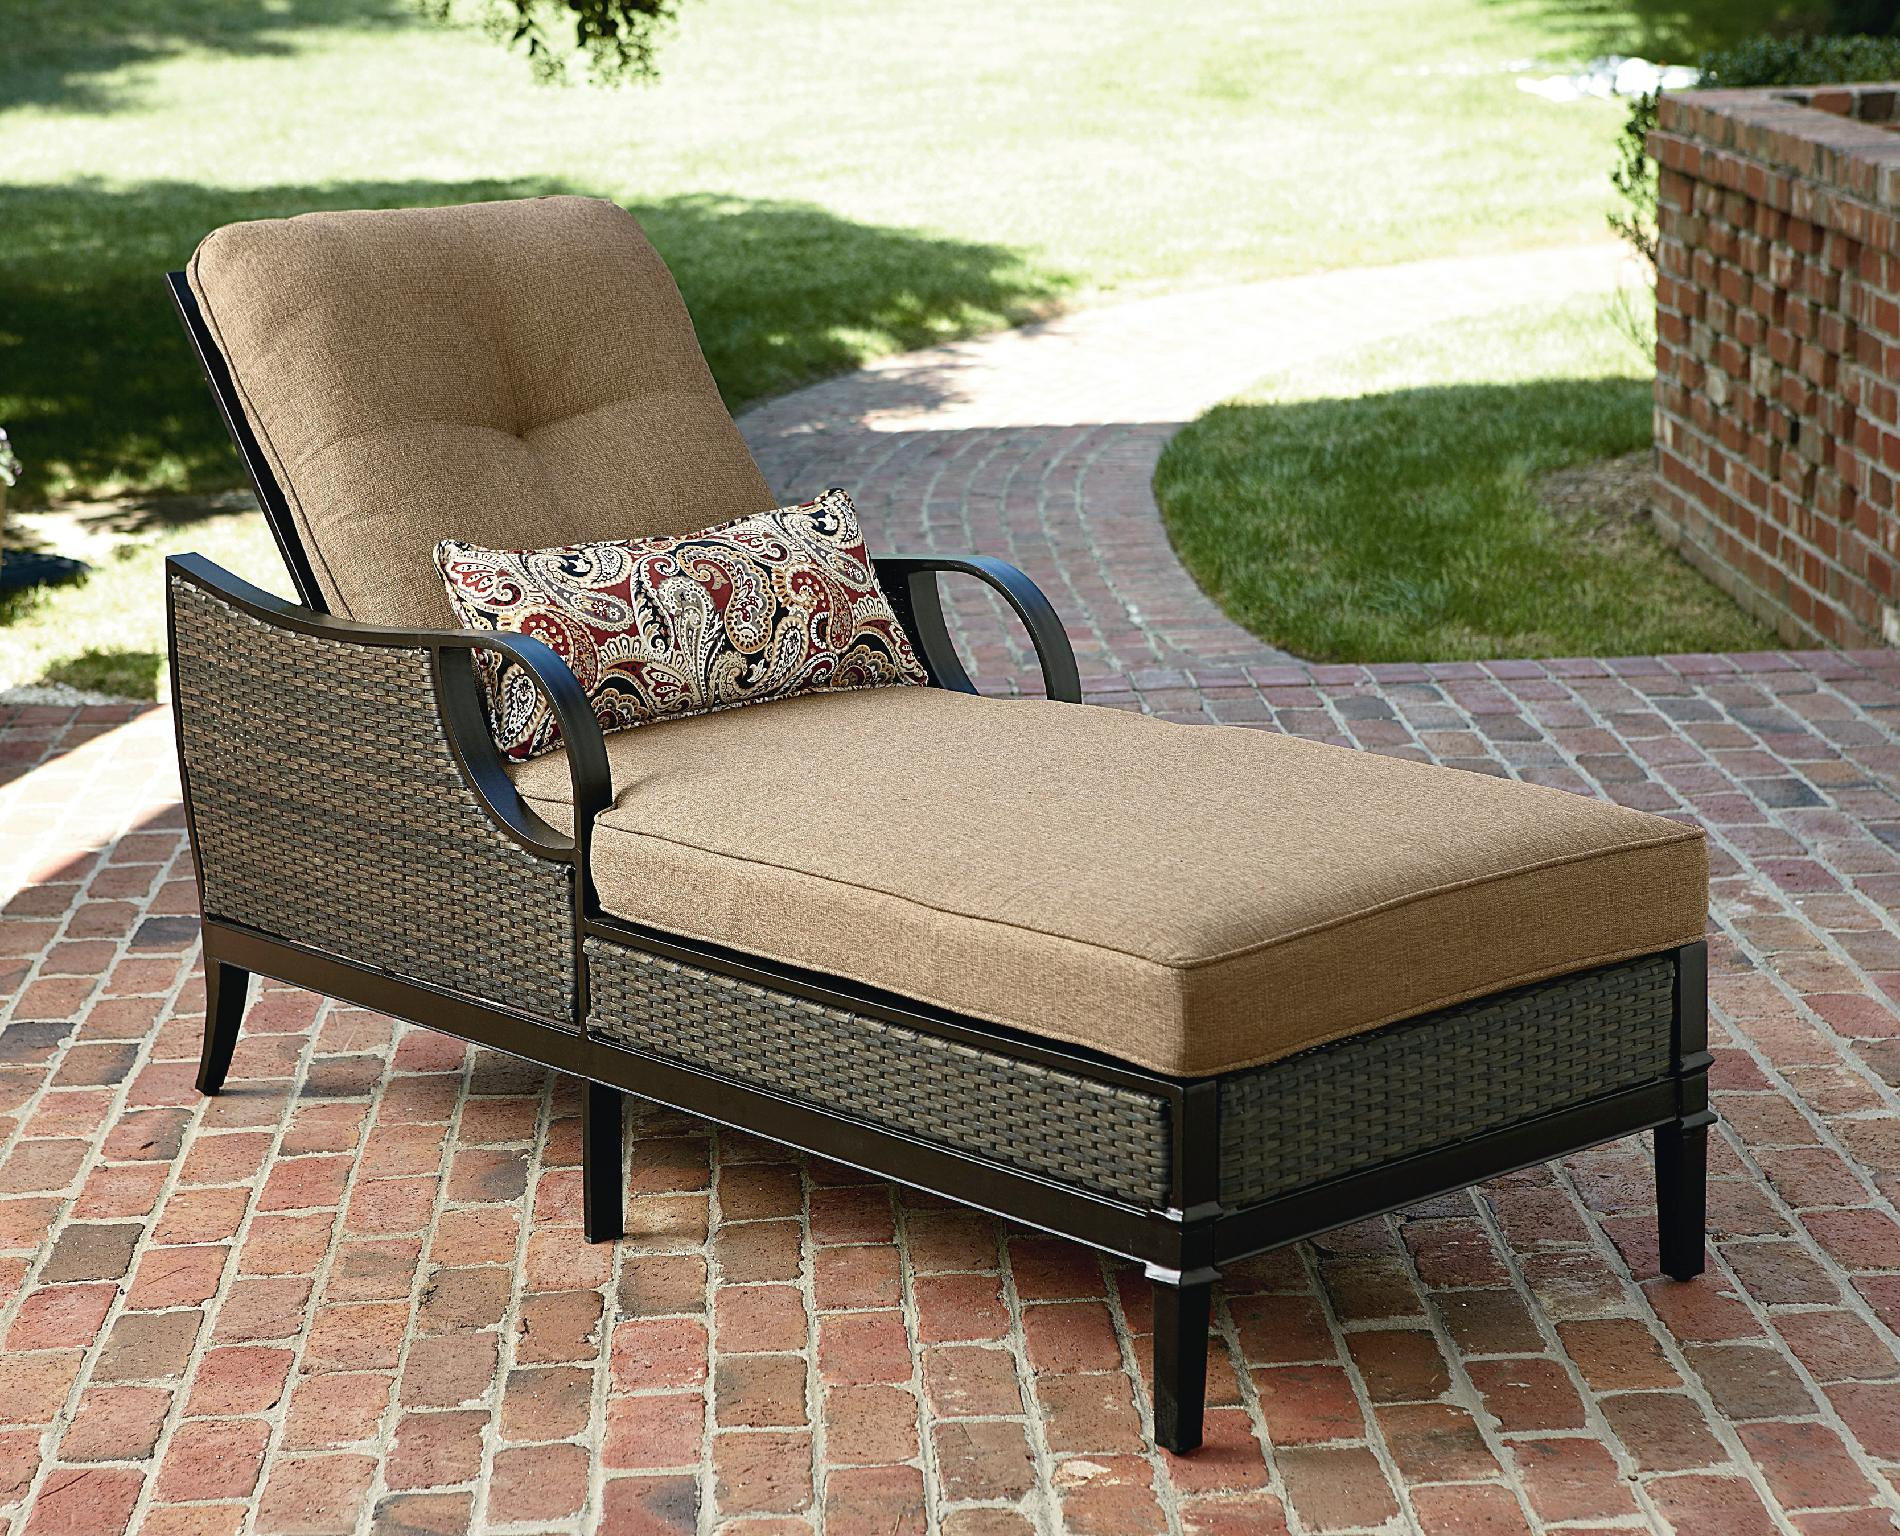 Outdoor Chaise Lounge La Z Boy Outdoor Charlotte Chaise Lounge